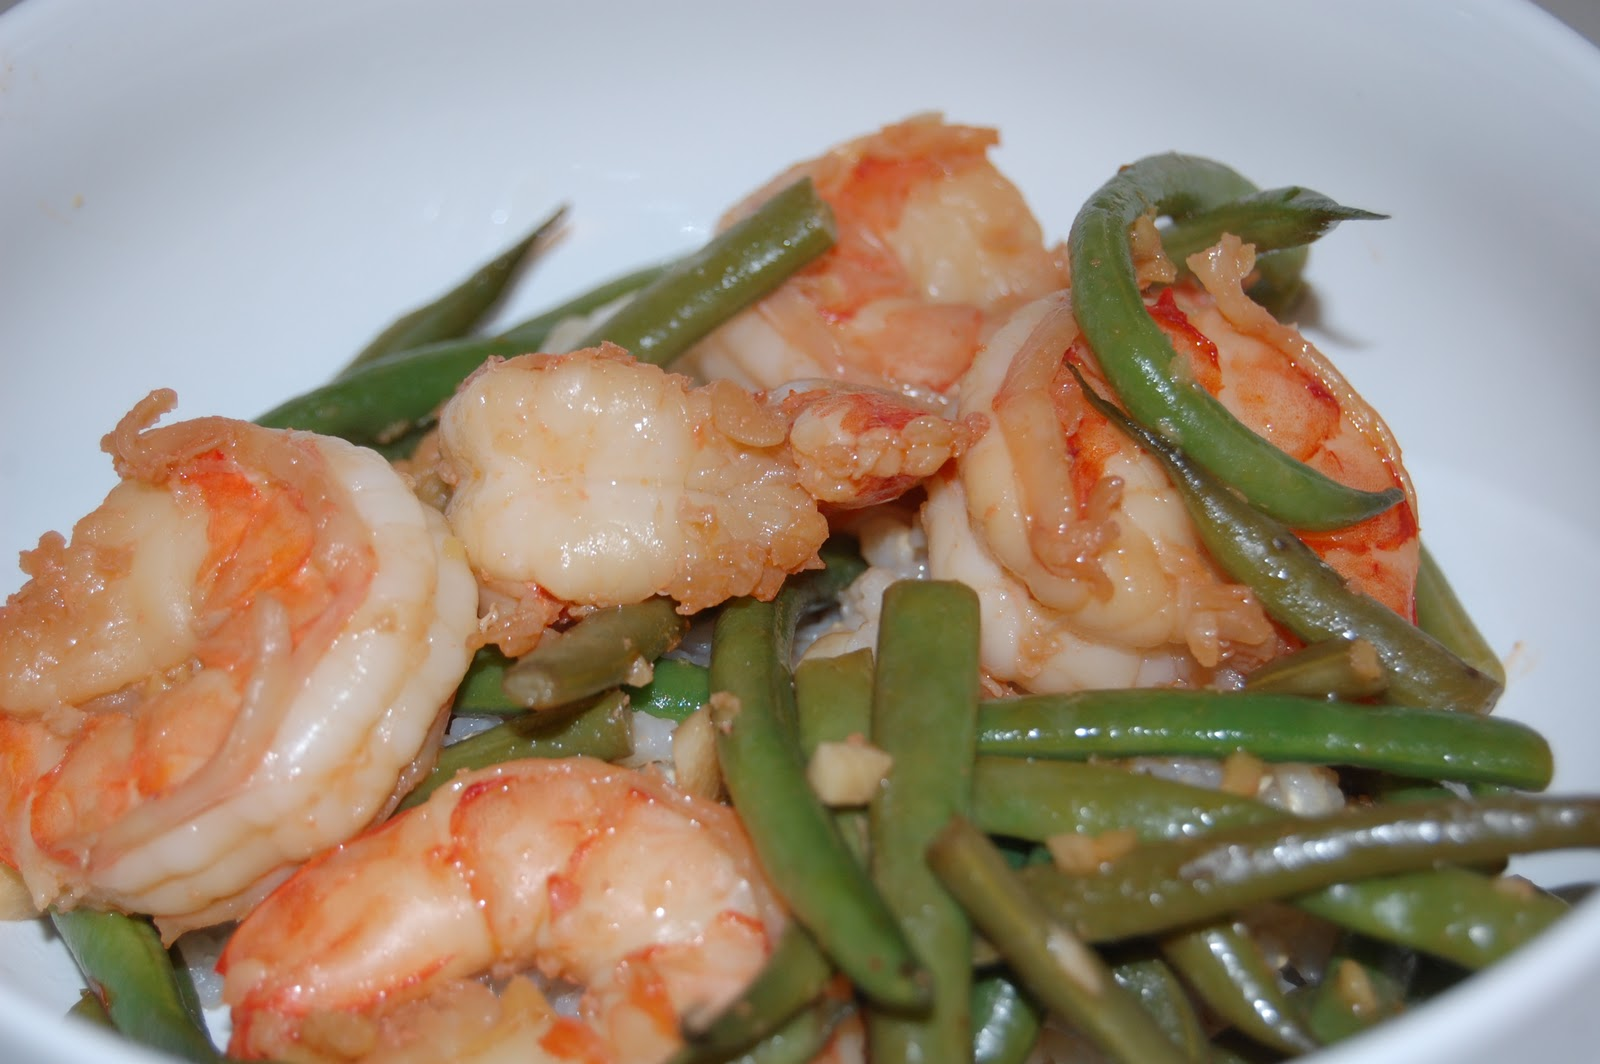 Kitchen Groovy: Stir-Fried Shrimp & Asparagus